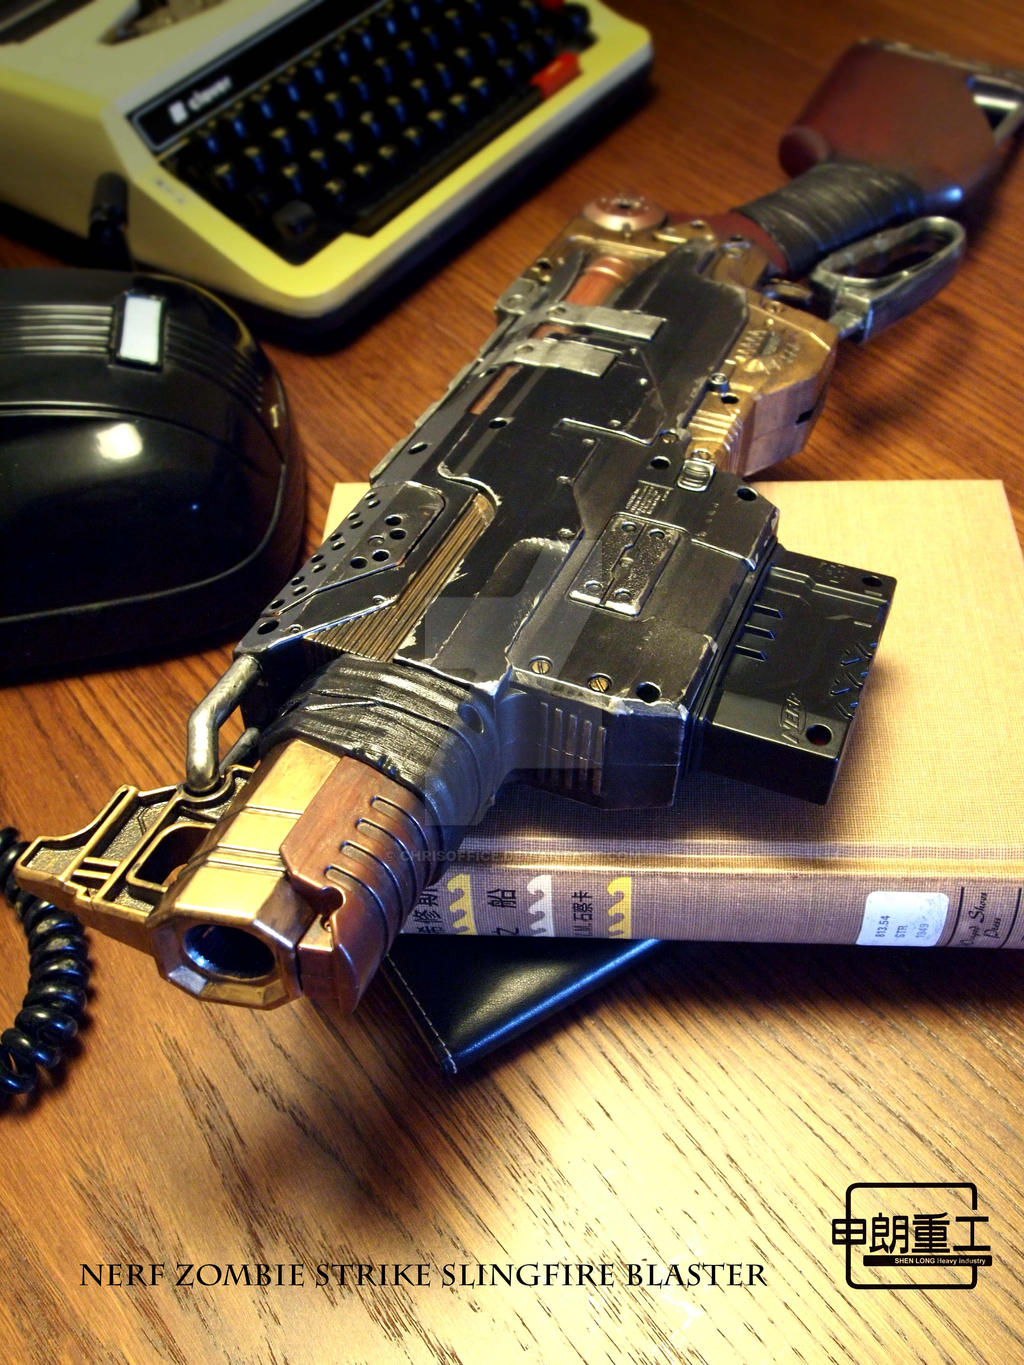 Nerf Zombie Strike SlingFire Blaster-1 by chrisoffice